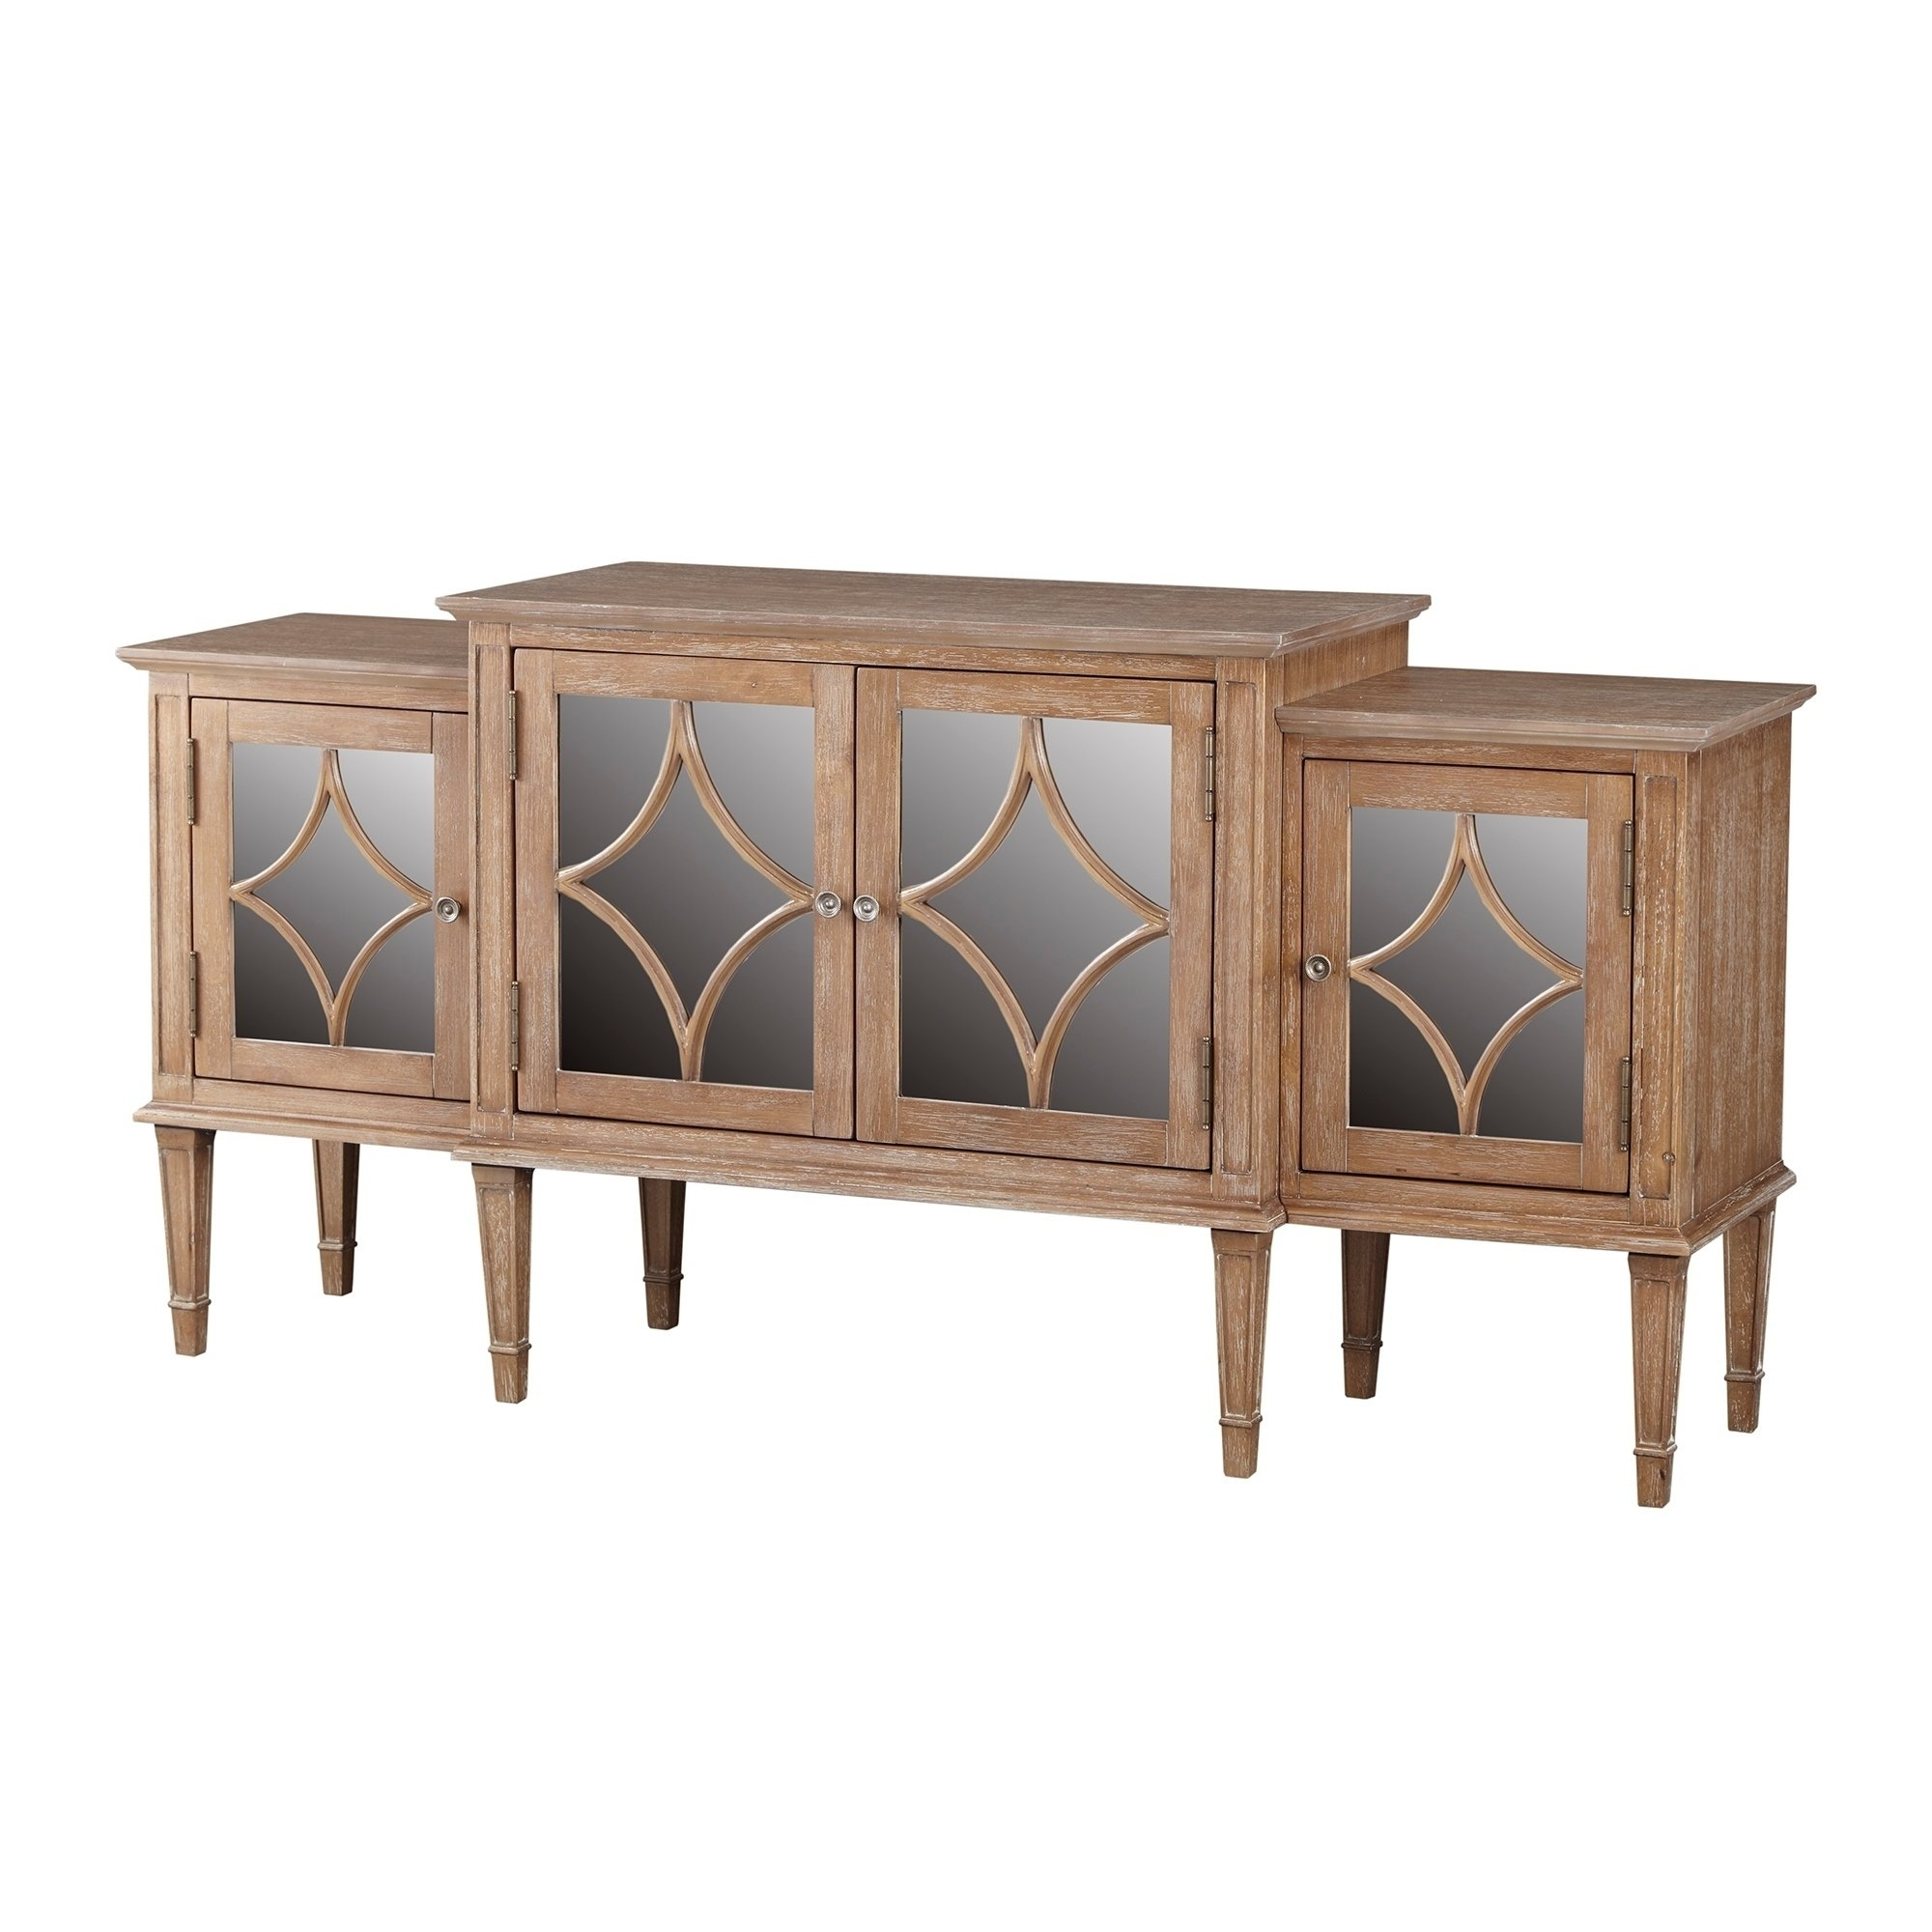 Buy Buffets, Sideboards & China Cabinets Online At Overstock pertaining to Light Brown Reclaimed Elm & Pine 84 Inch Sideboards (Image 6 of 30)